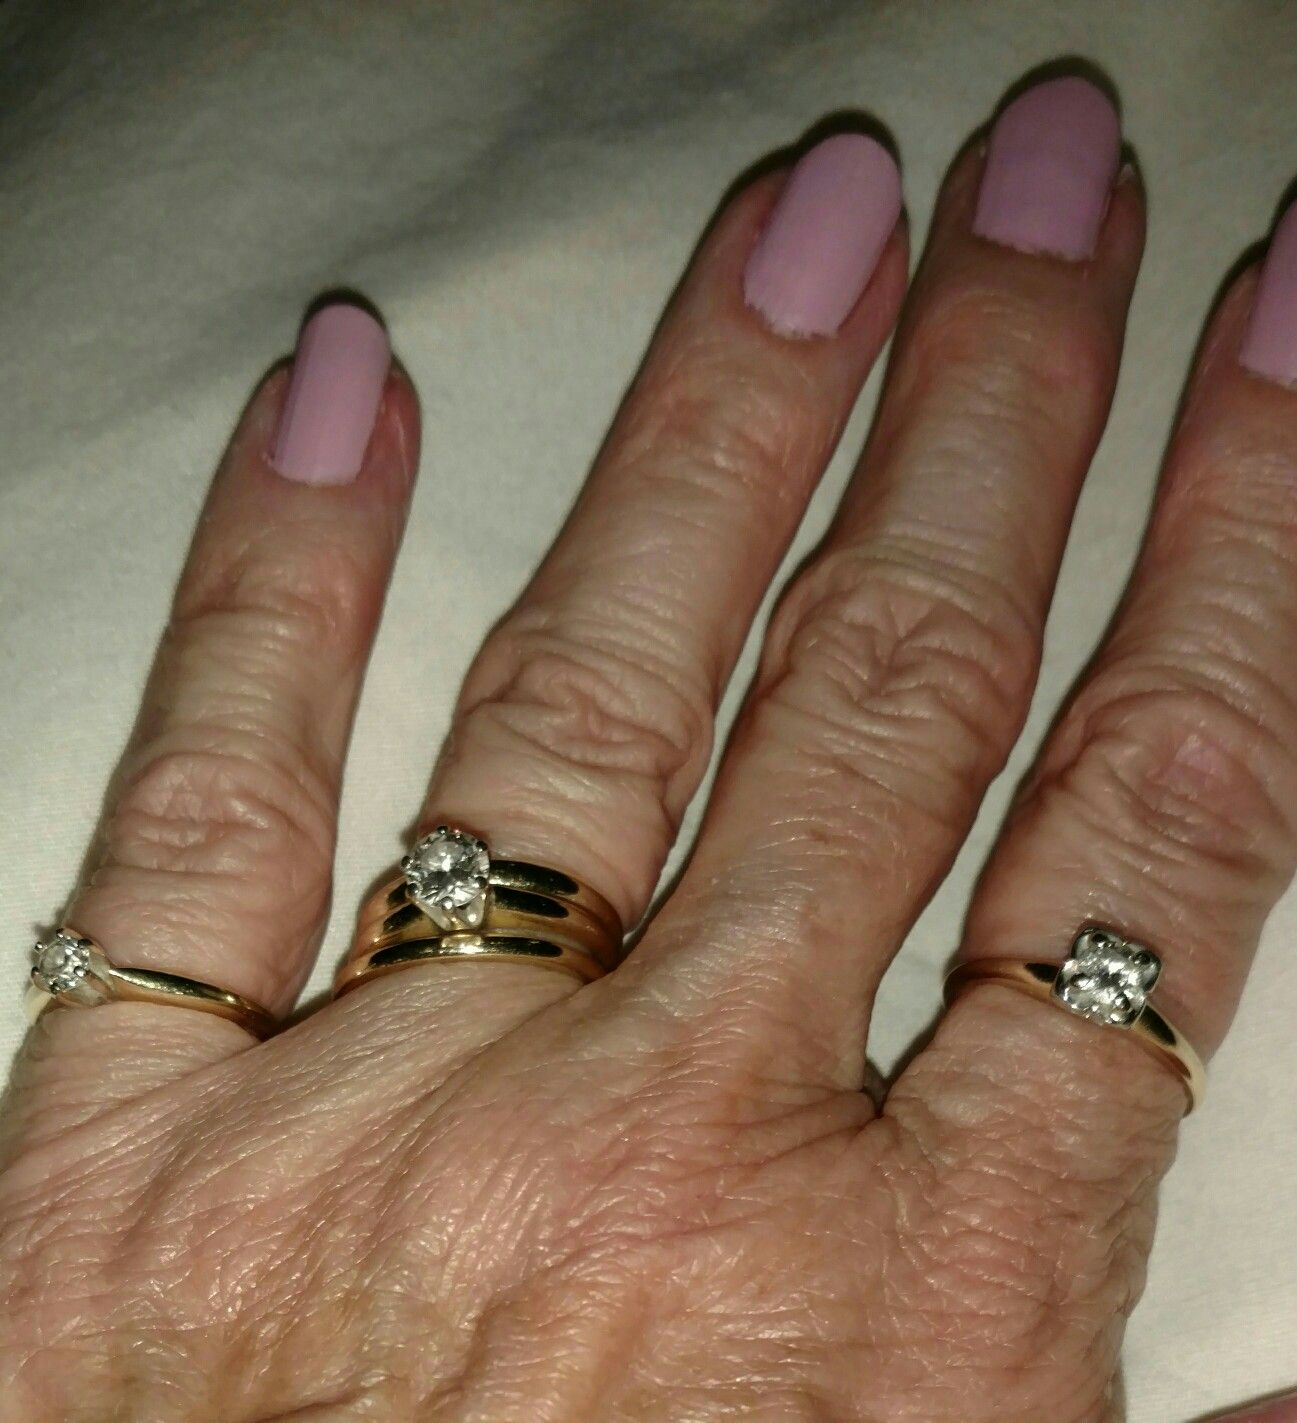 widows and wedding rings